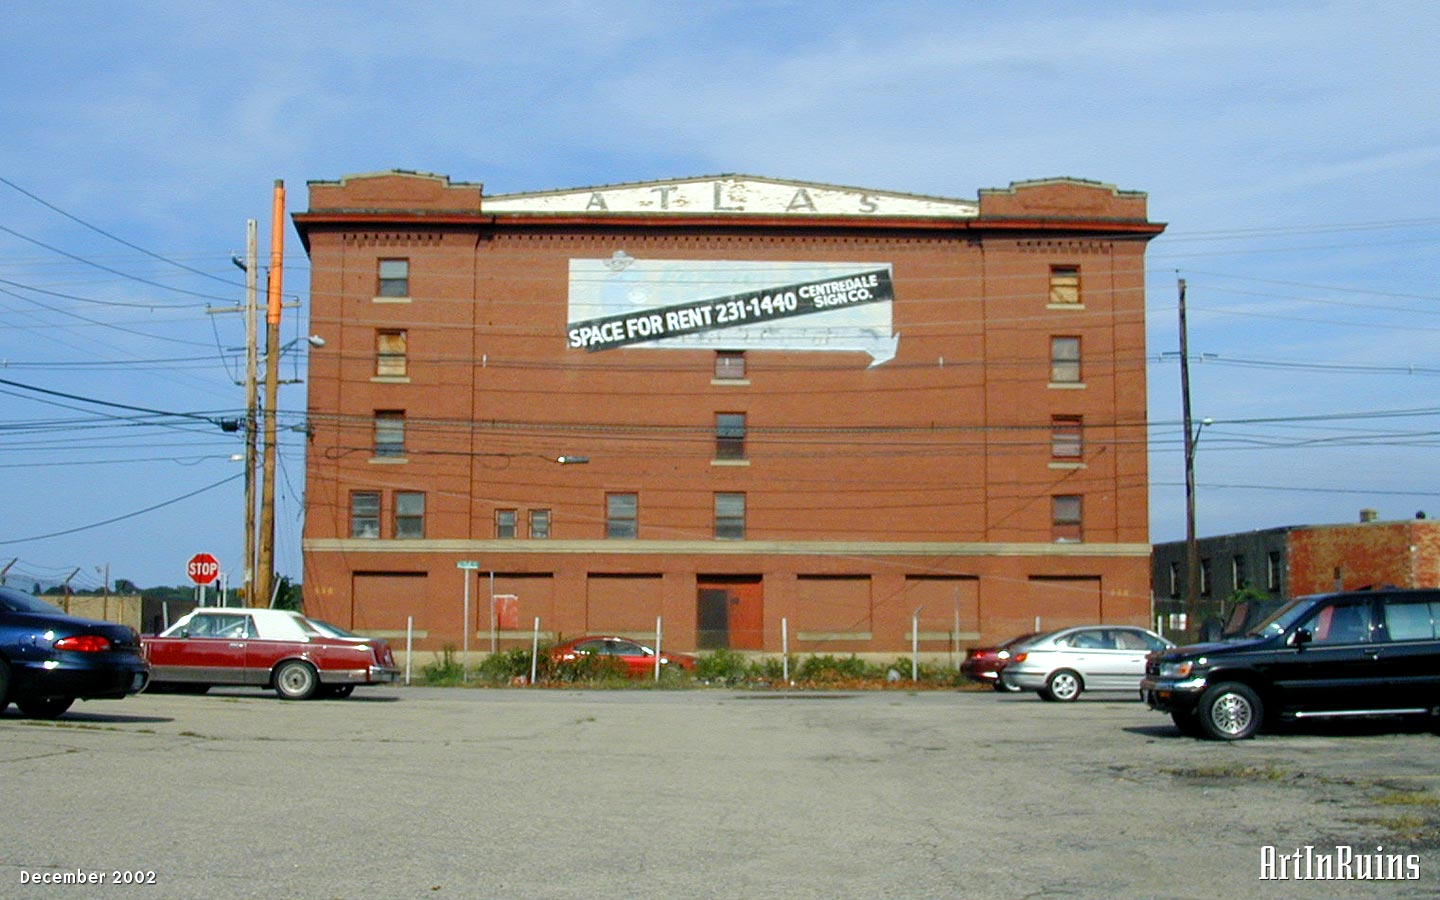 Two large, solidly built five-story warehouses along the Providence harbor waterfront. Red brick construction with small window openings, stone sills, and arched stone lintels on square plans with a few hundred feet between them. The warehouse facing the waterfront had giant white faded letters reading Terminal Warehouse Co.